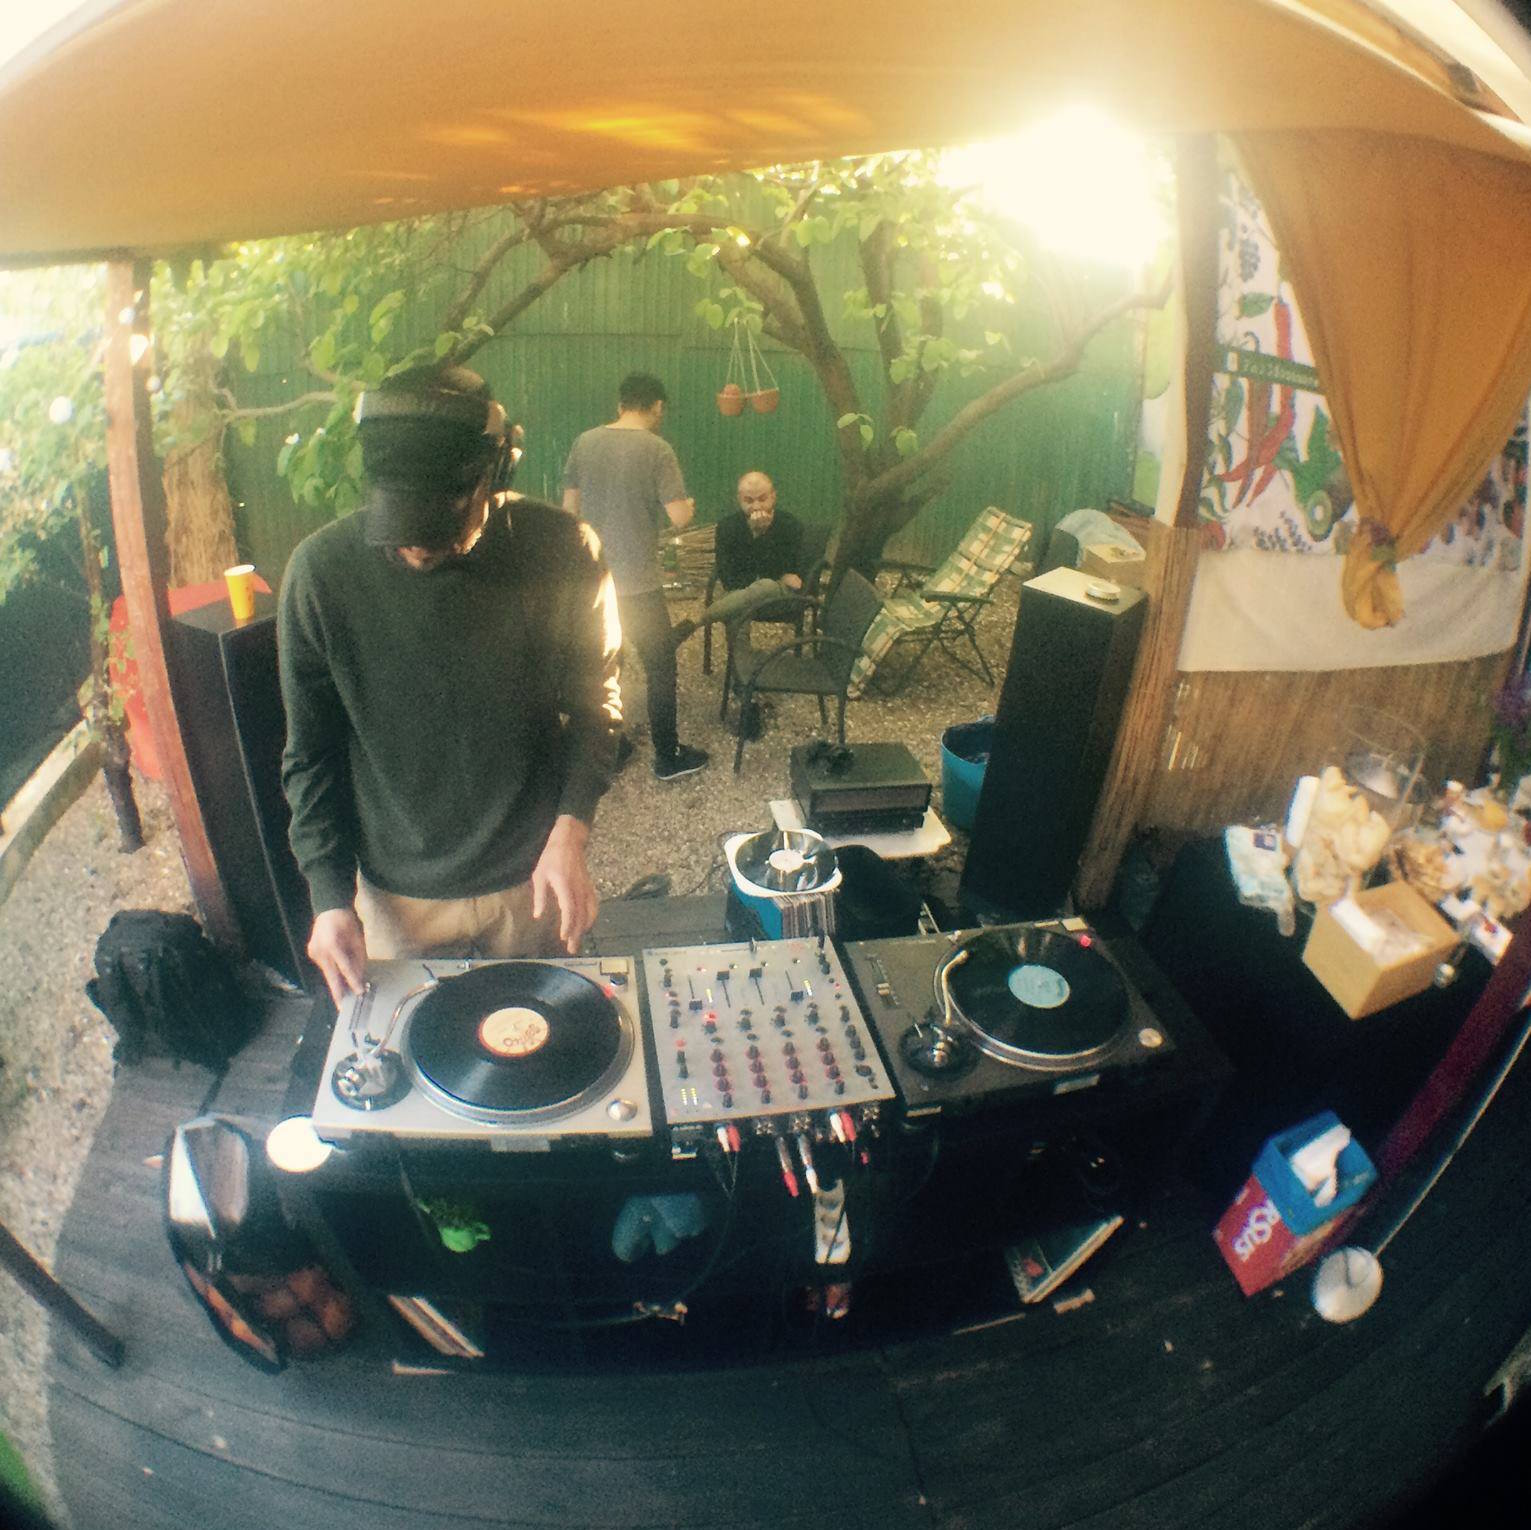 A Funk Perspective: Crate Digging with UFe